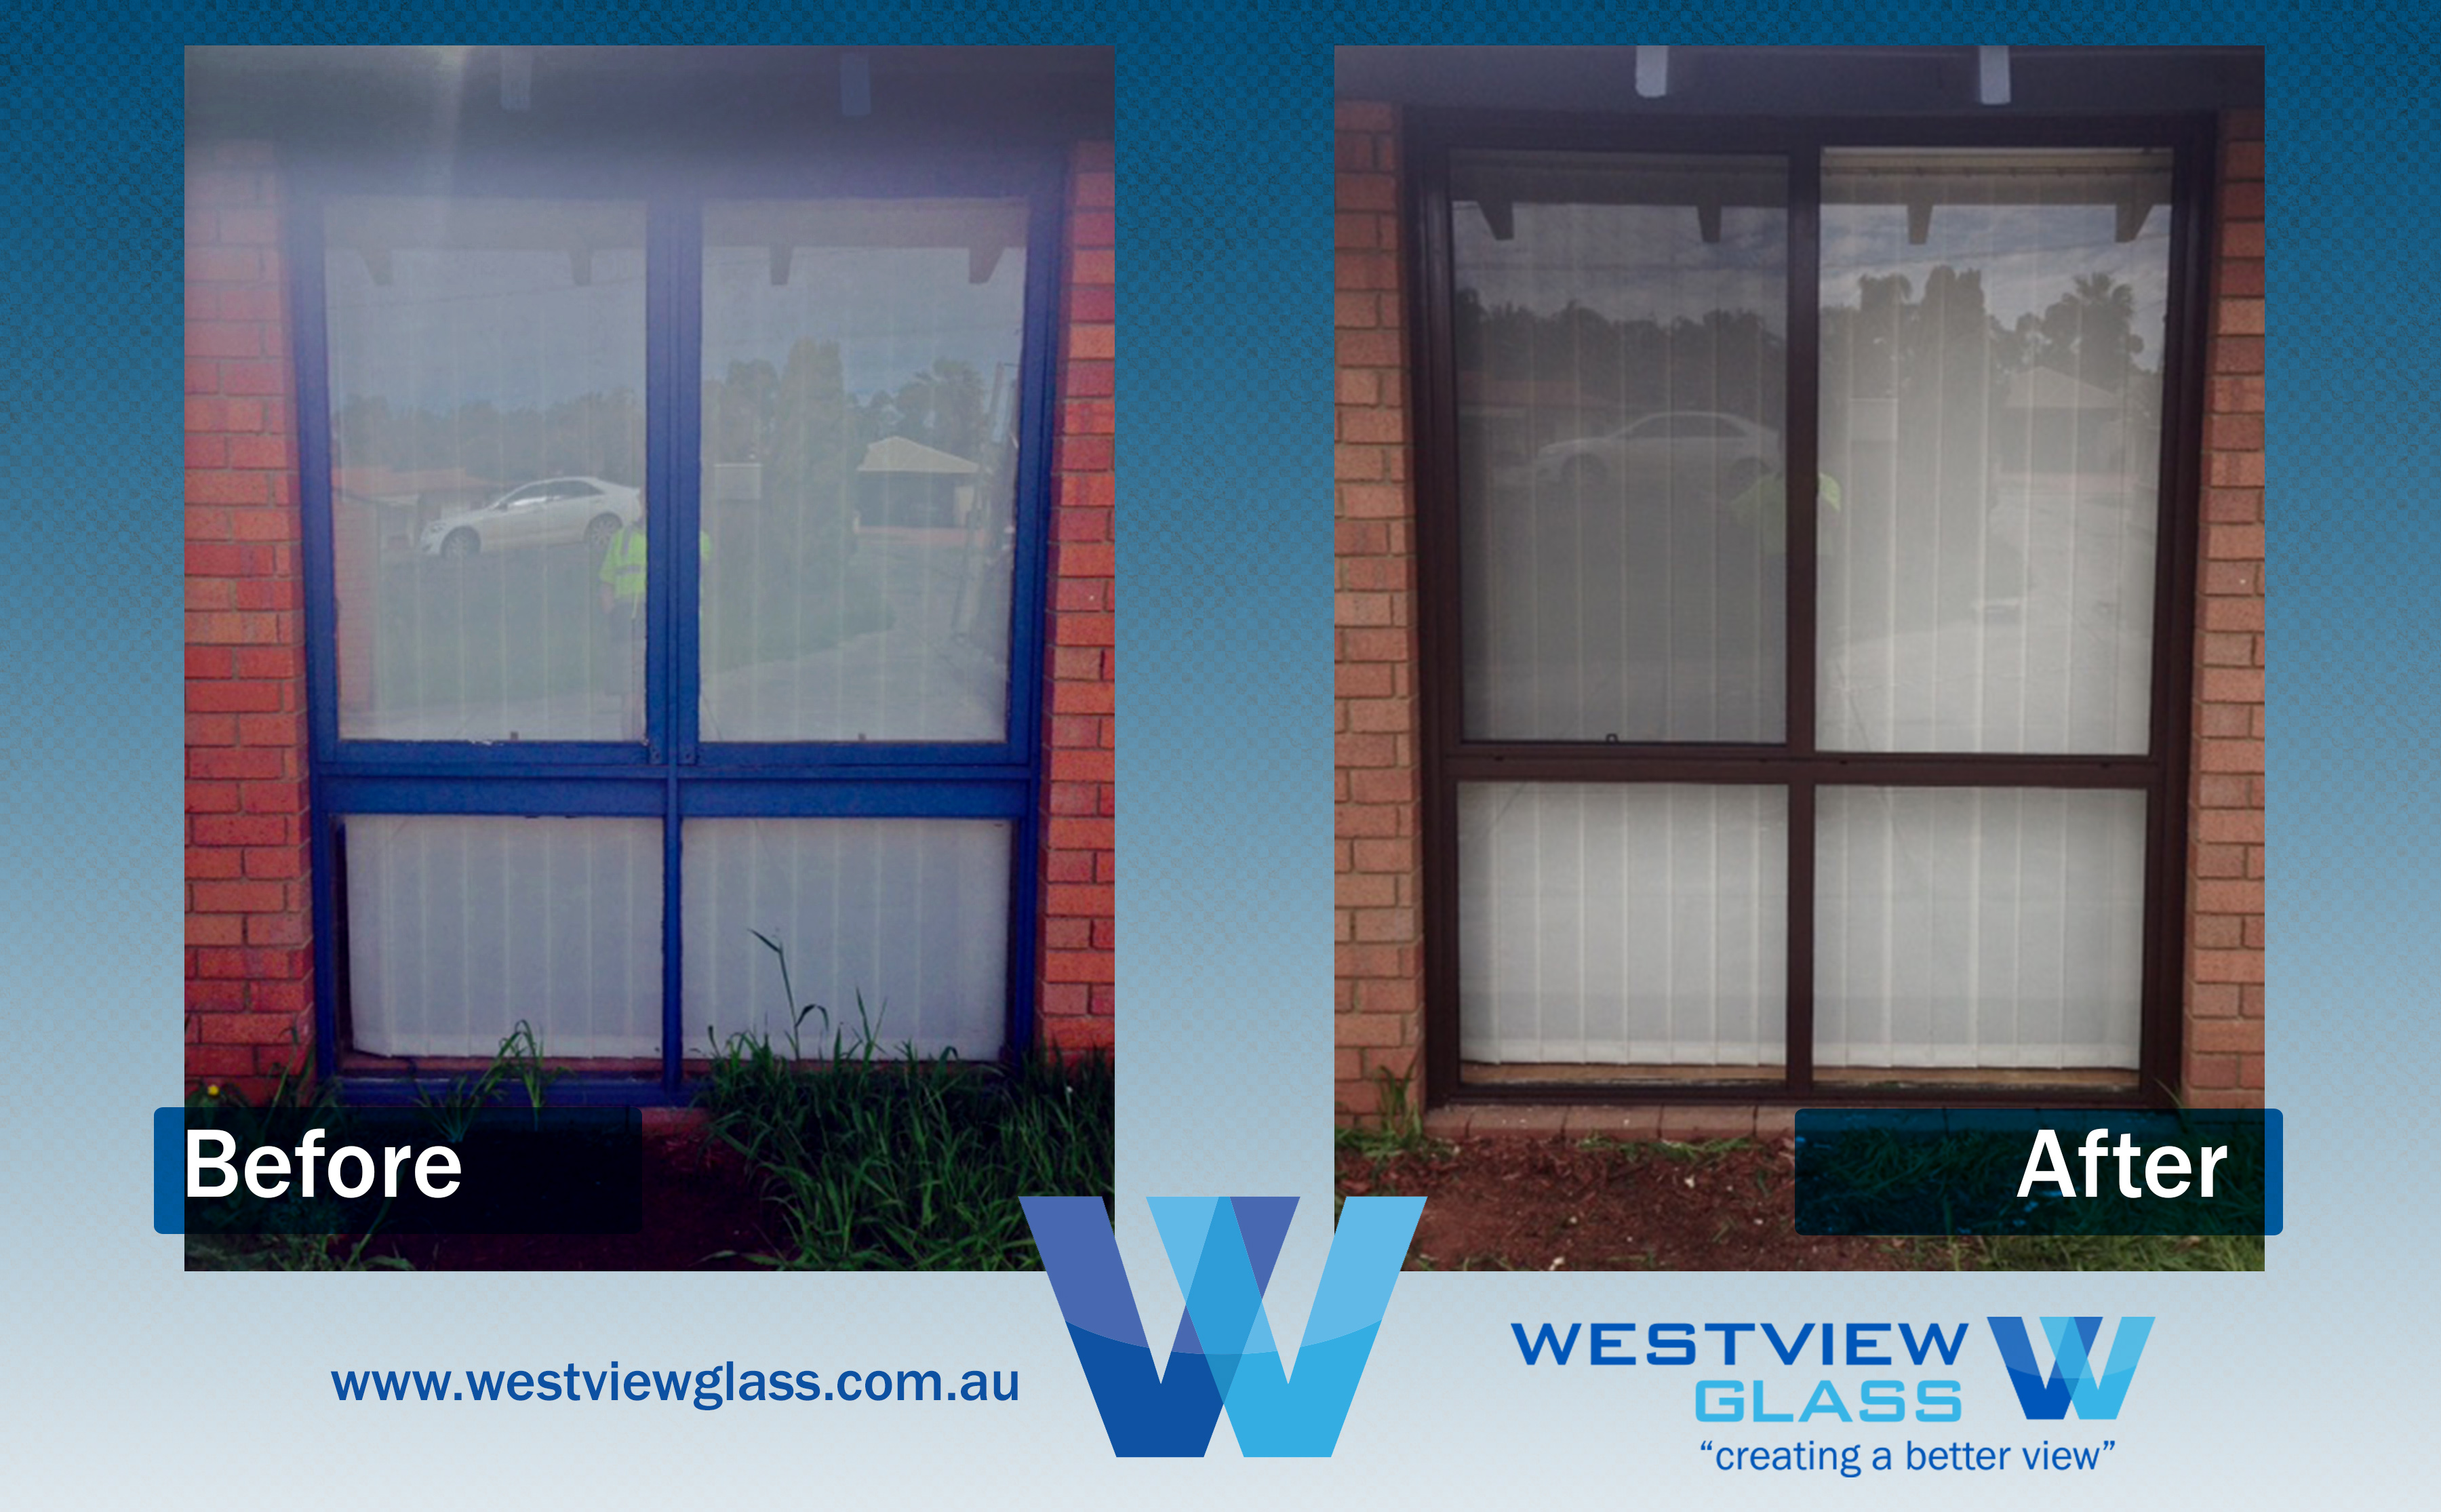 Sliding Window Timber Brown Sliding Window - Aluminium Window Gallery – Before & After